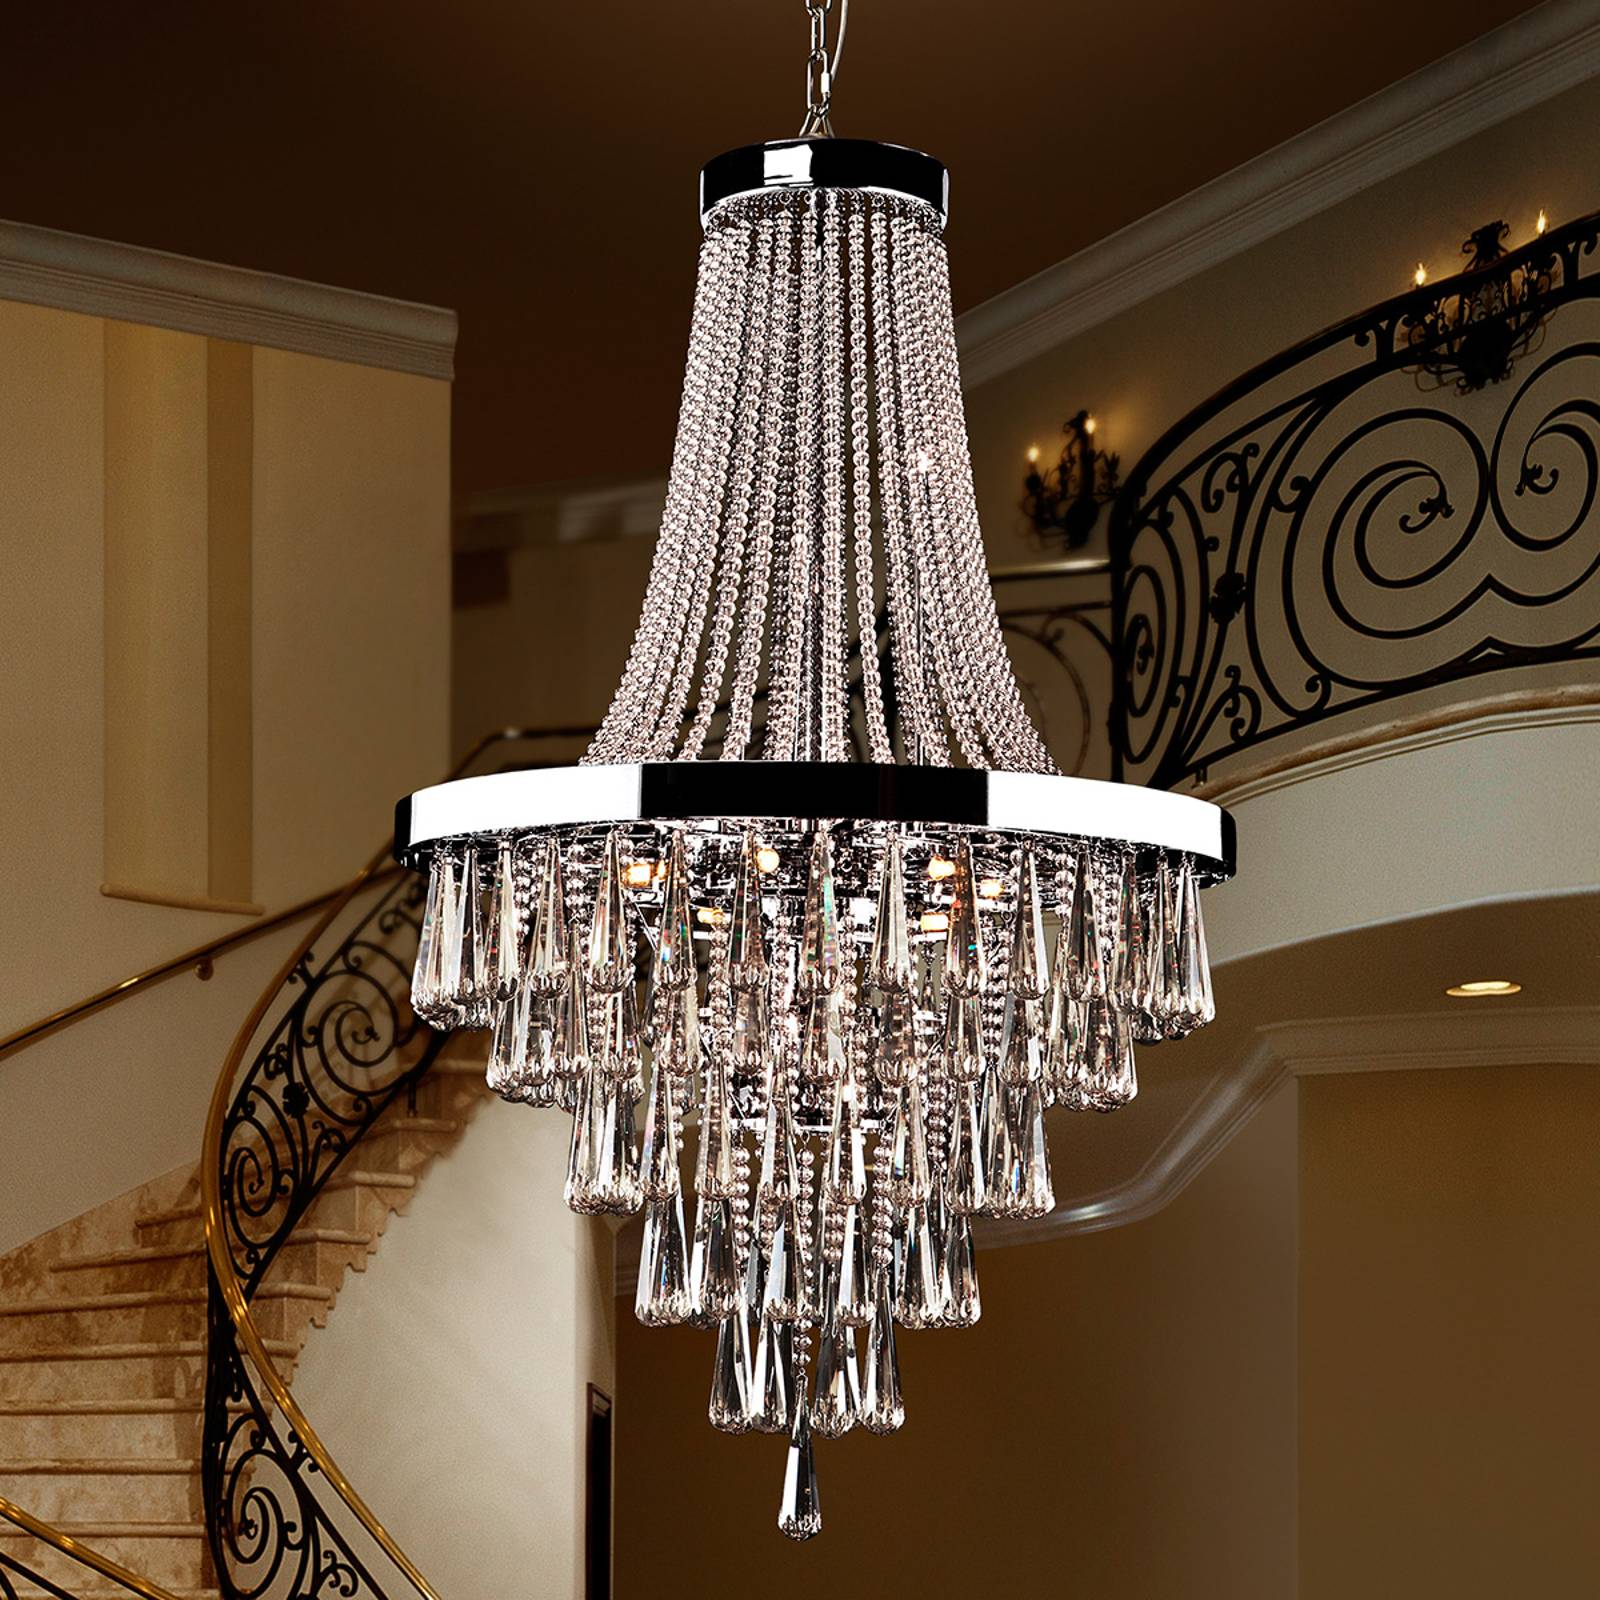 Magnificent crystal chandelier Palace from Schuller